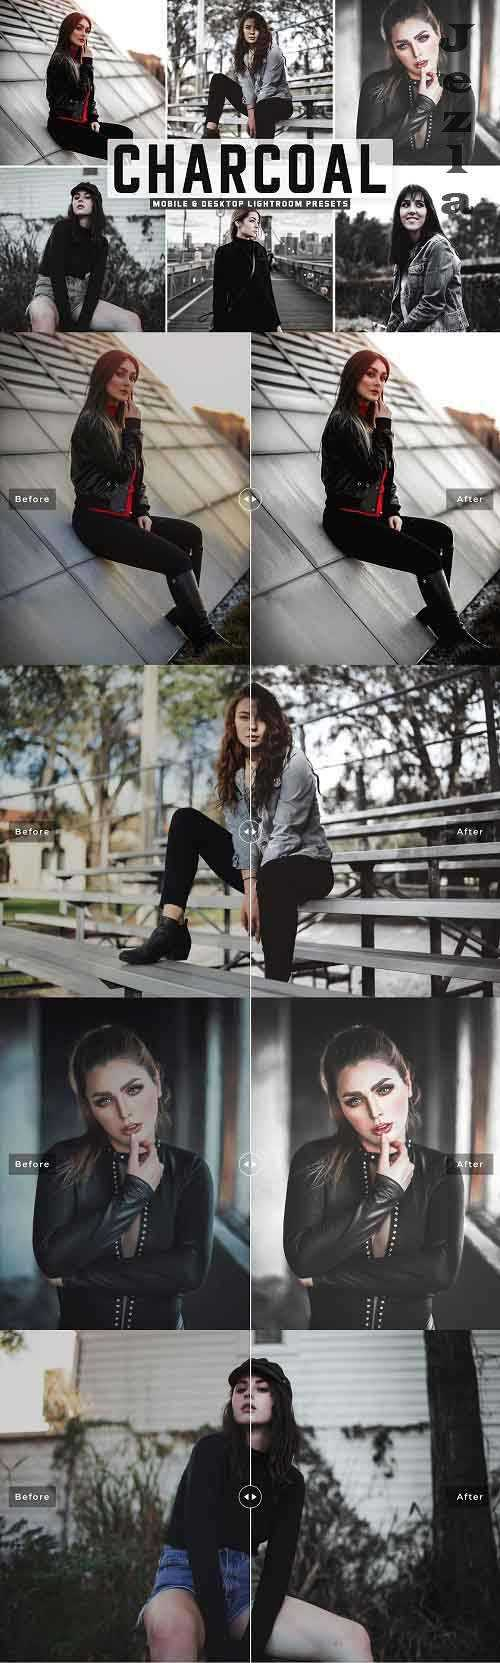 Charcoal Pro Lightroom Presets – 5423667 – Mobile & Desktop